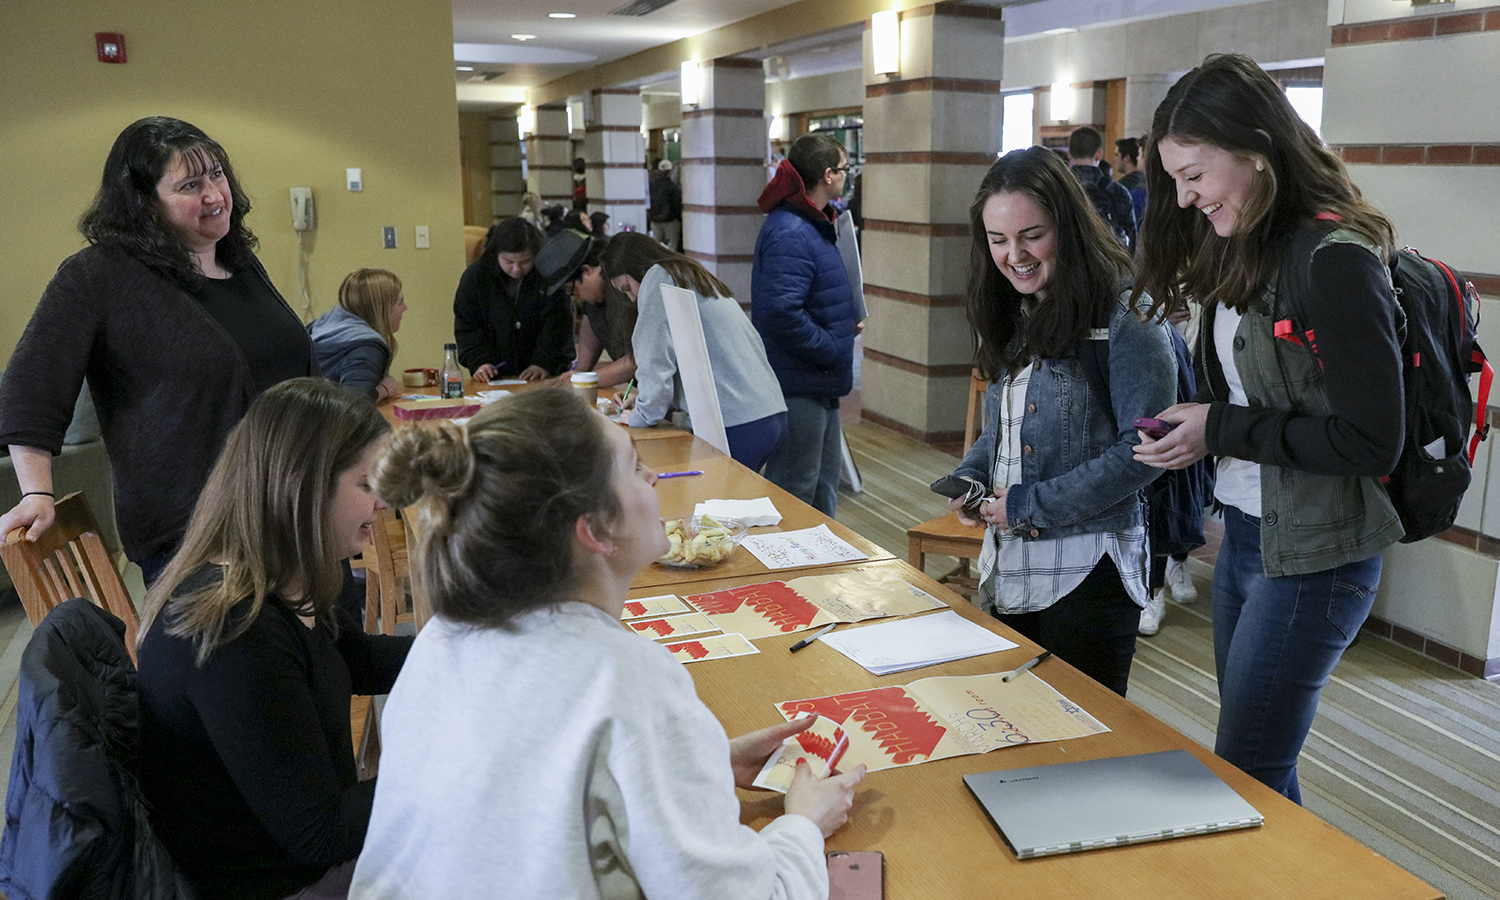 Director of the Abbe Center for Jewish Life and Hillel adviser Julianne Miller (left), Jordannah Schreiber '18 and Grace Martel '18 talk with Jacque Kane '18 and Katy Bjornson '18 while tabling on behalf of HWS Shabbat in Scandling Campus Center.